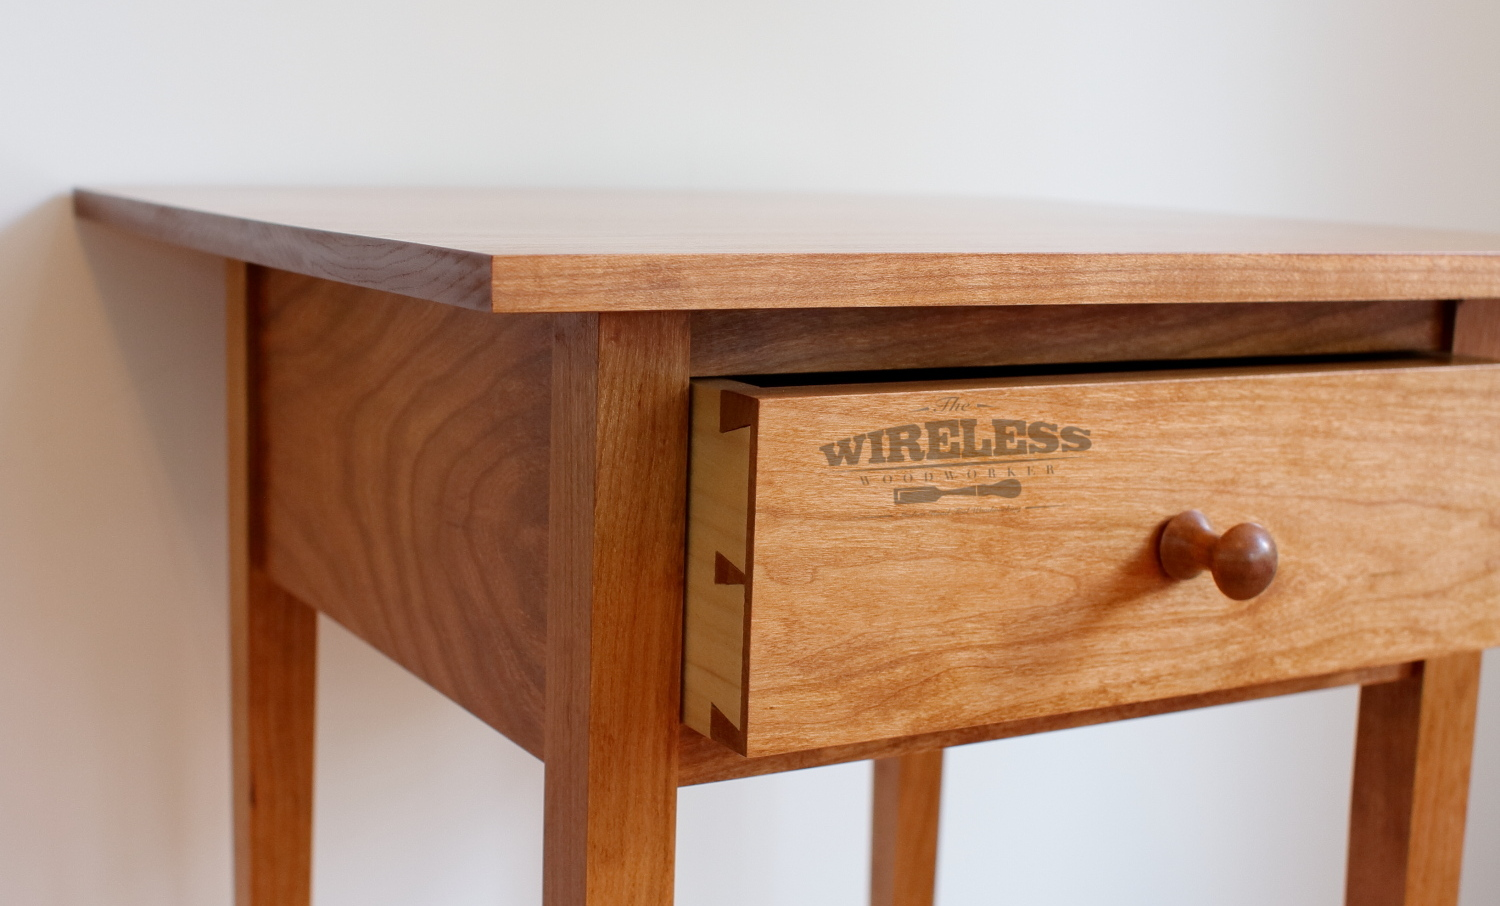 the wireless woodworker